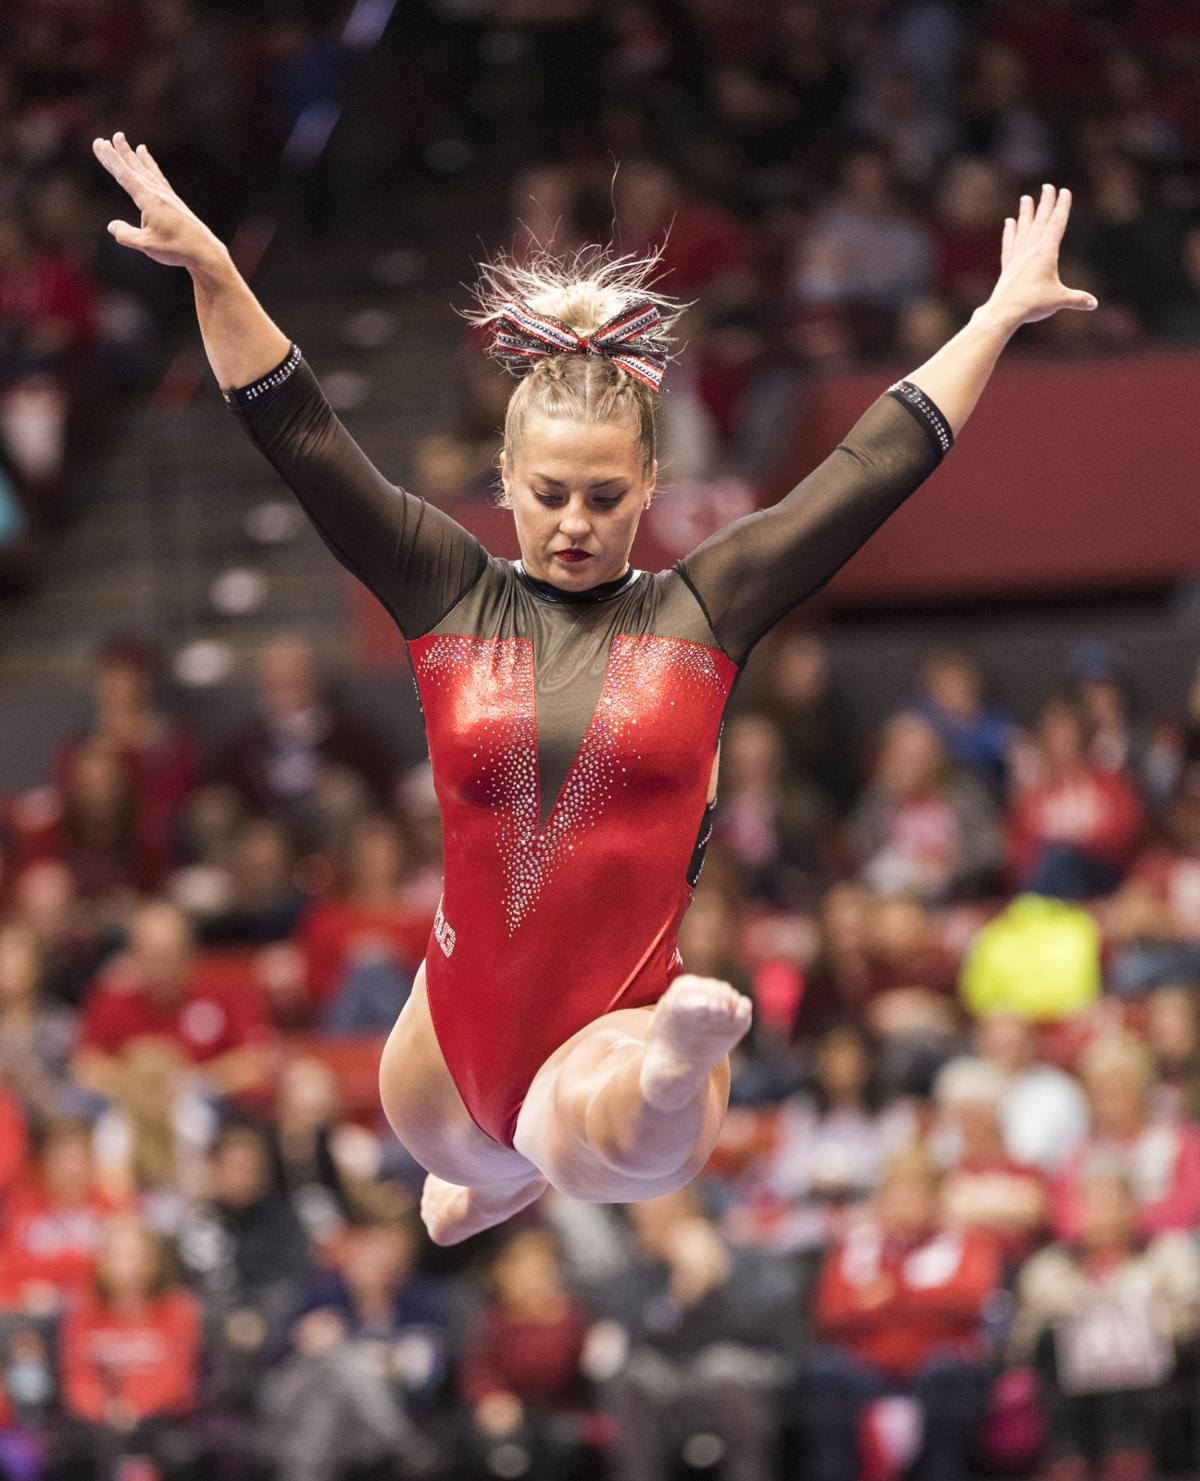 Husker women gymnasts finding the right balance on beam  db2a3b192